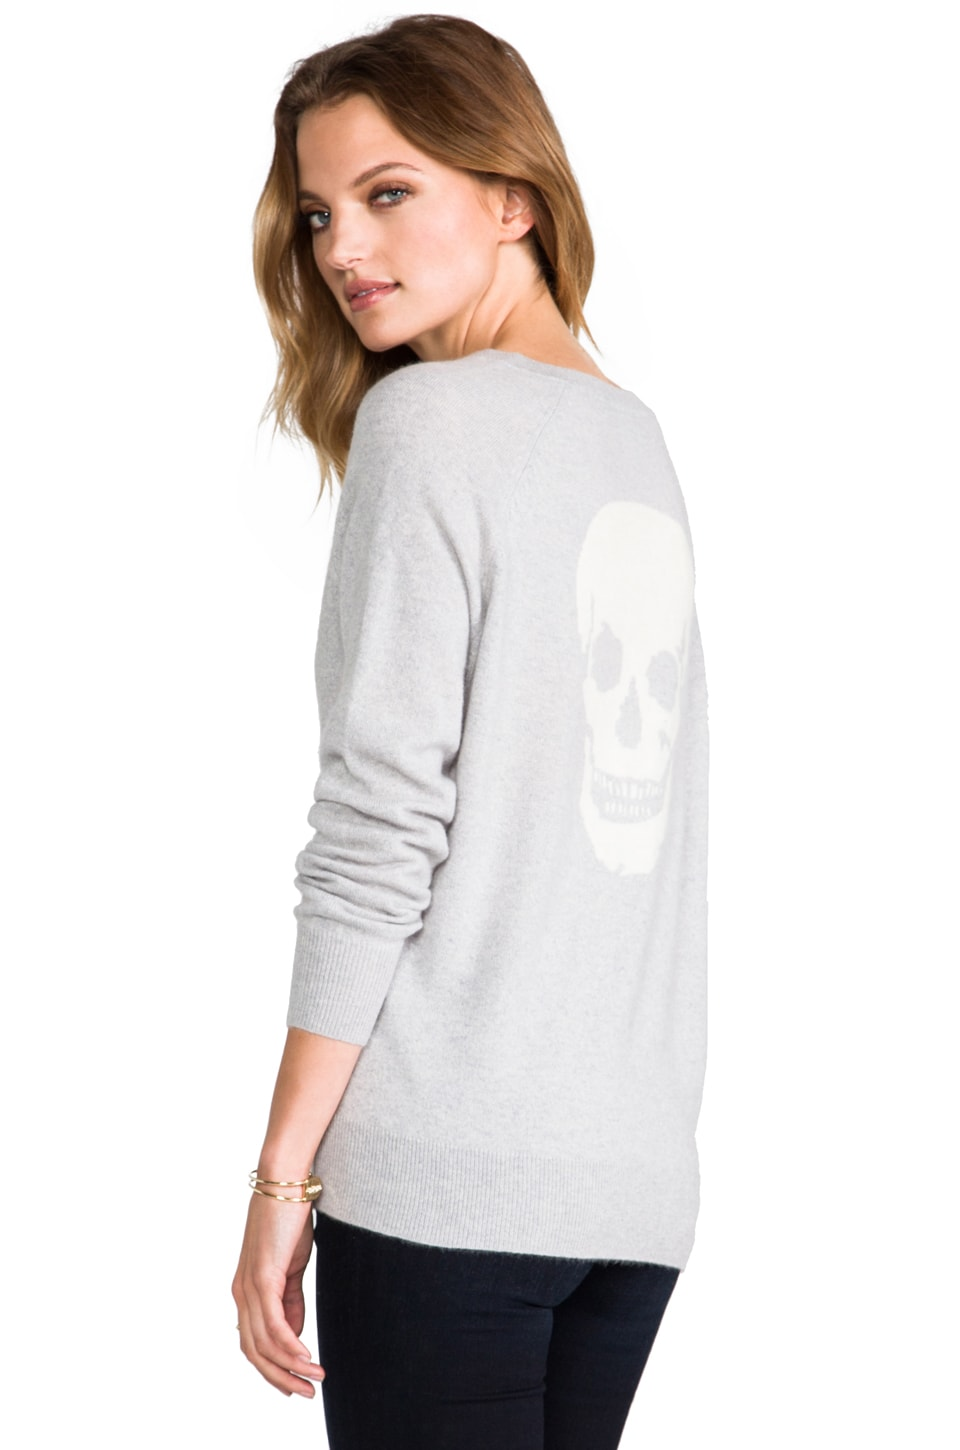 Skull Cashmere Luther Skull Sweater in Powder Grey/Ivory